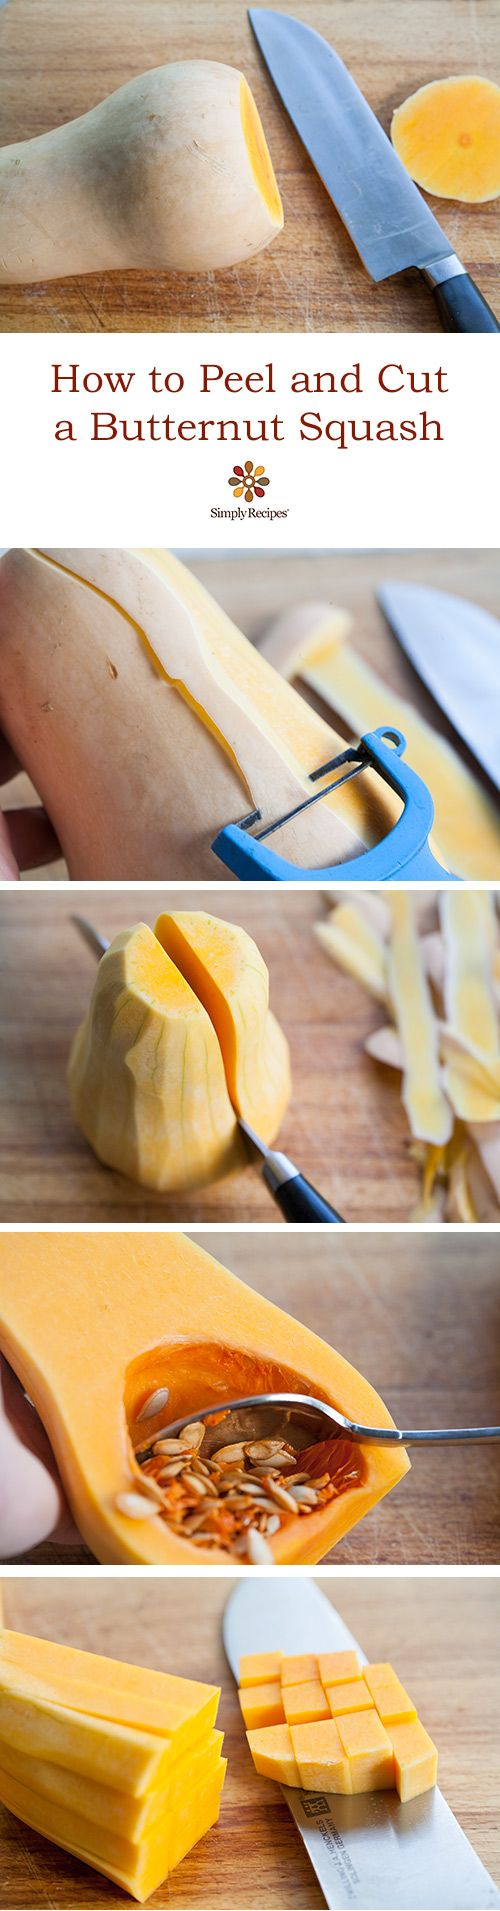 Butternut squash can be so hard to work with! Here's how to safely peel and cut them.